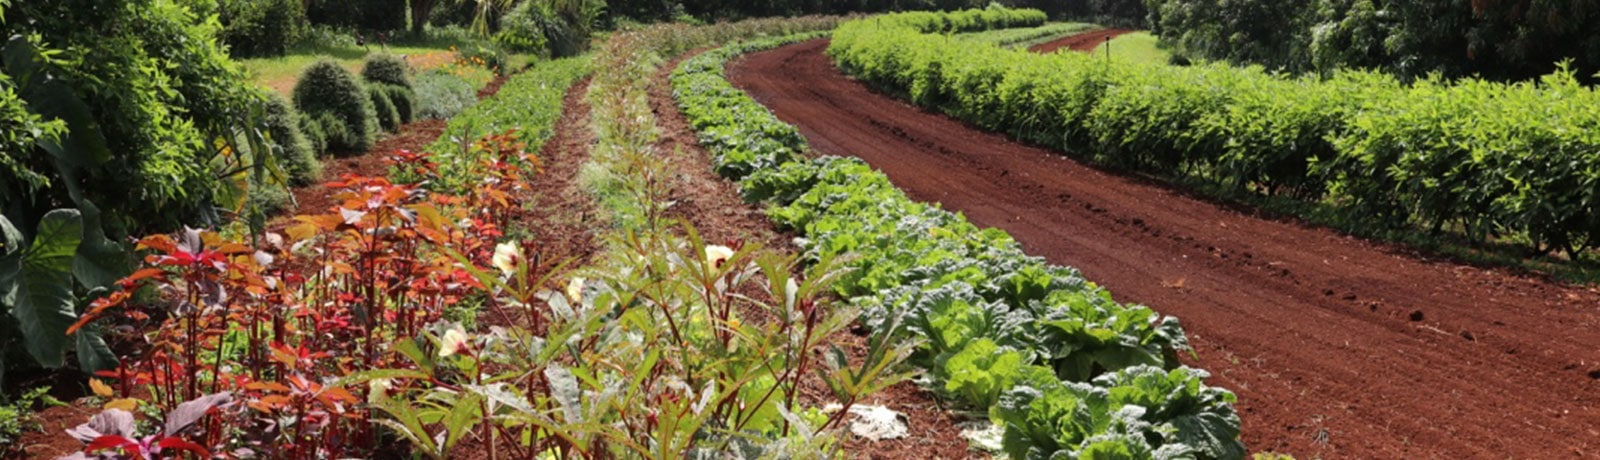 Organic Farmers Produce at Hoku Foods Kapaa